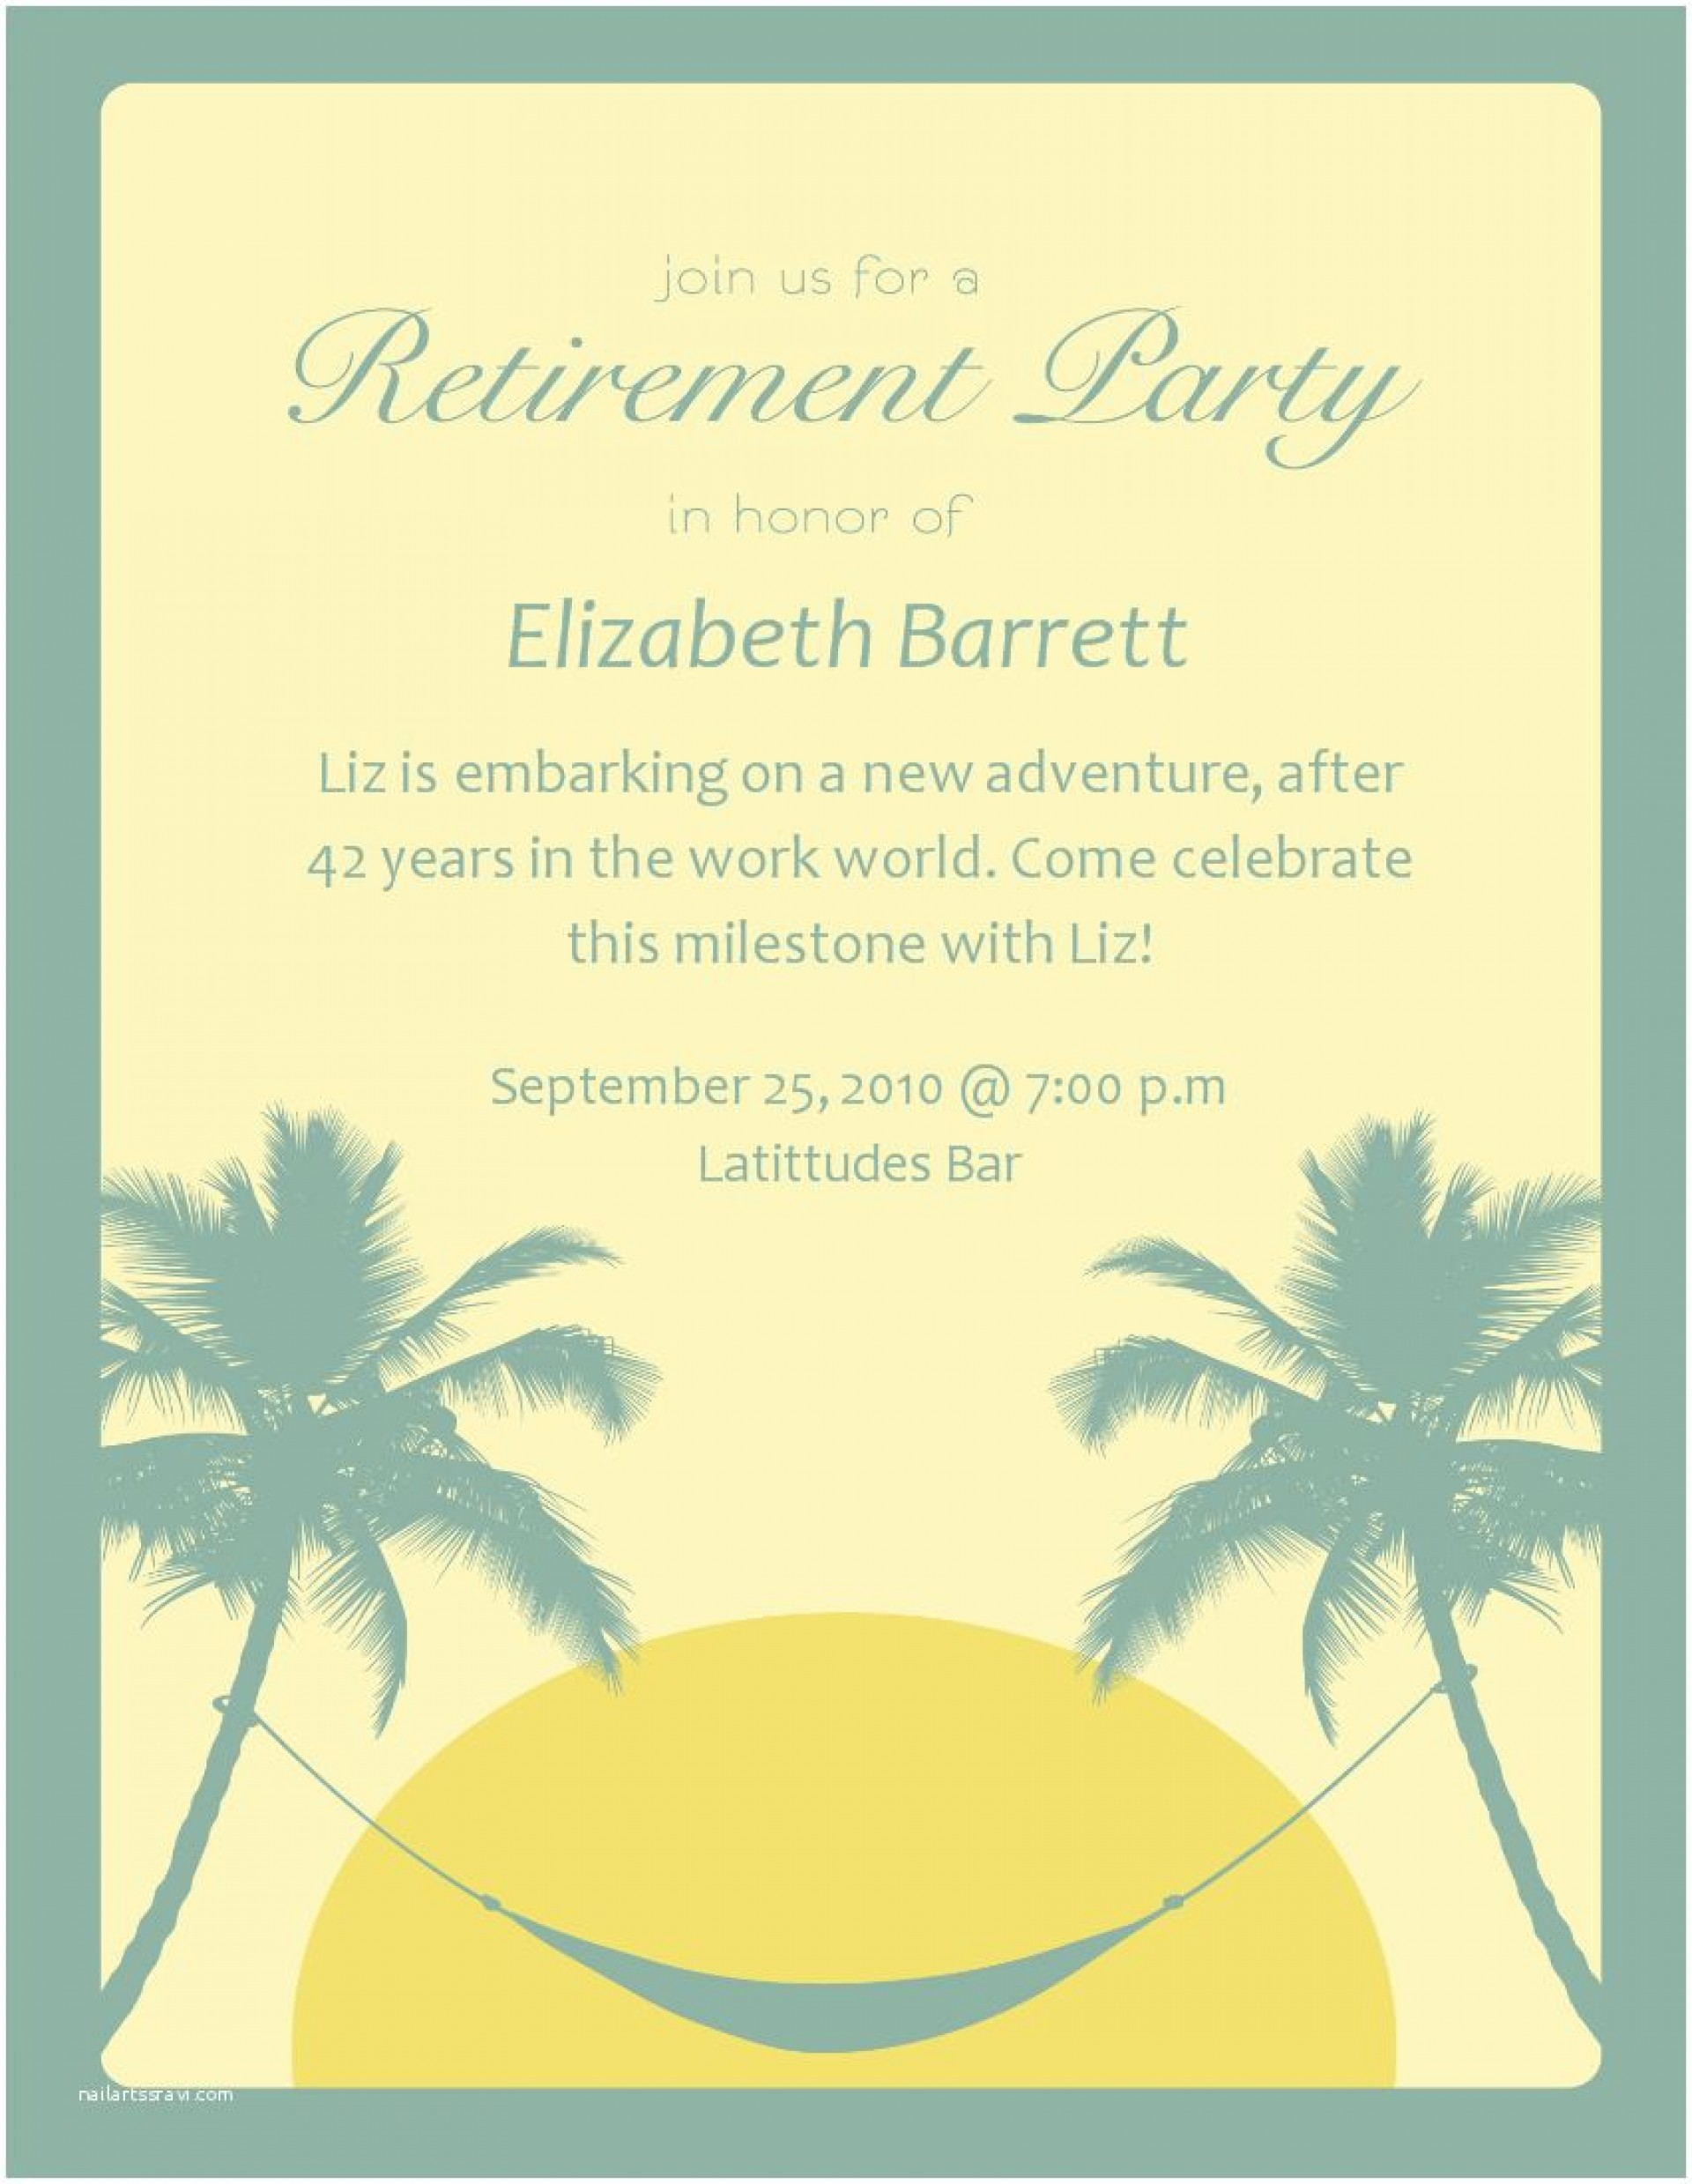 008 Surprising Free Retirement Invitation Template Image  Templates Microsoft Word Party Flyer1920